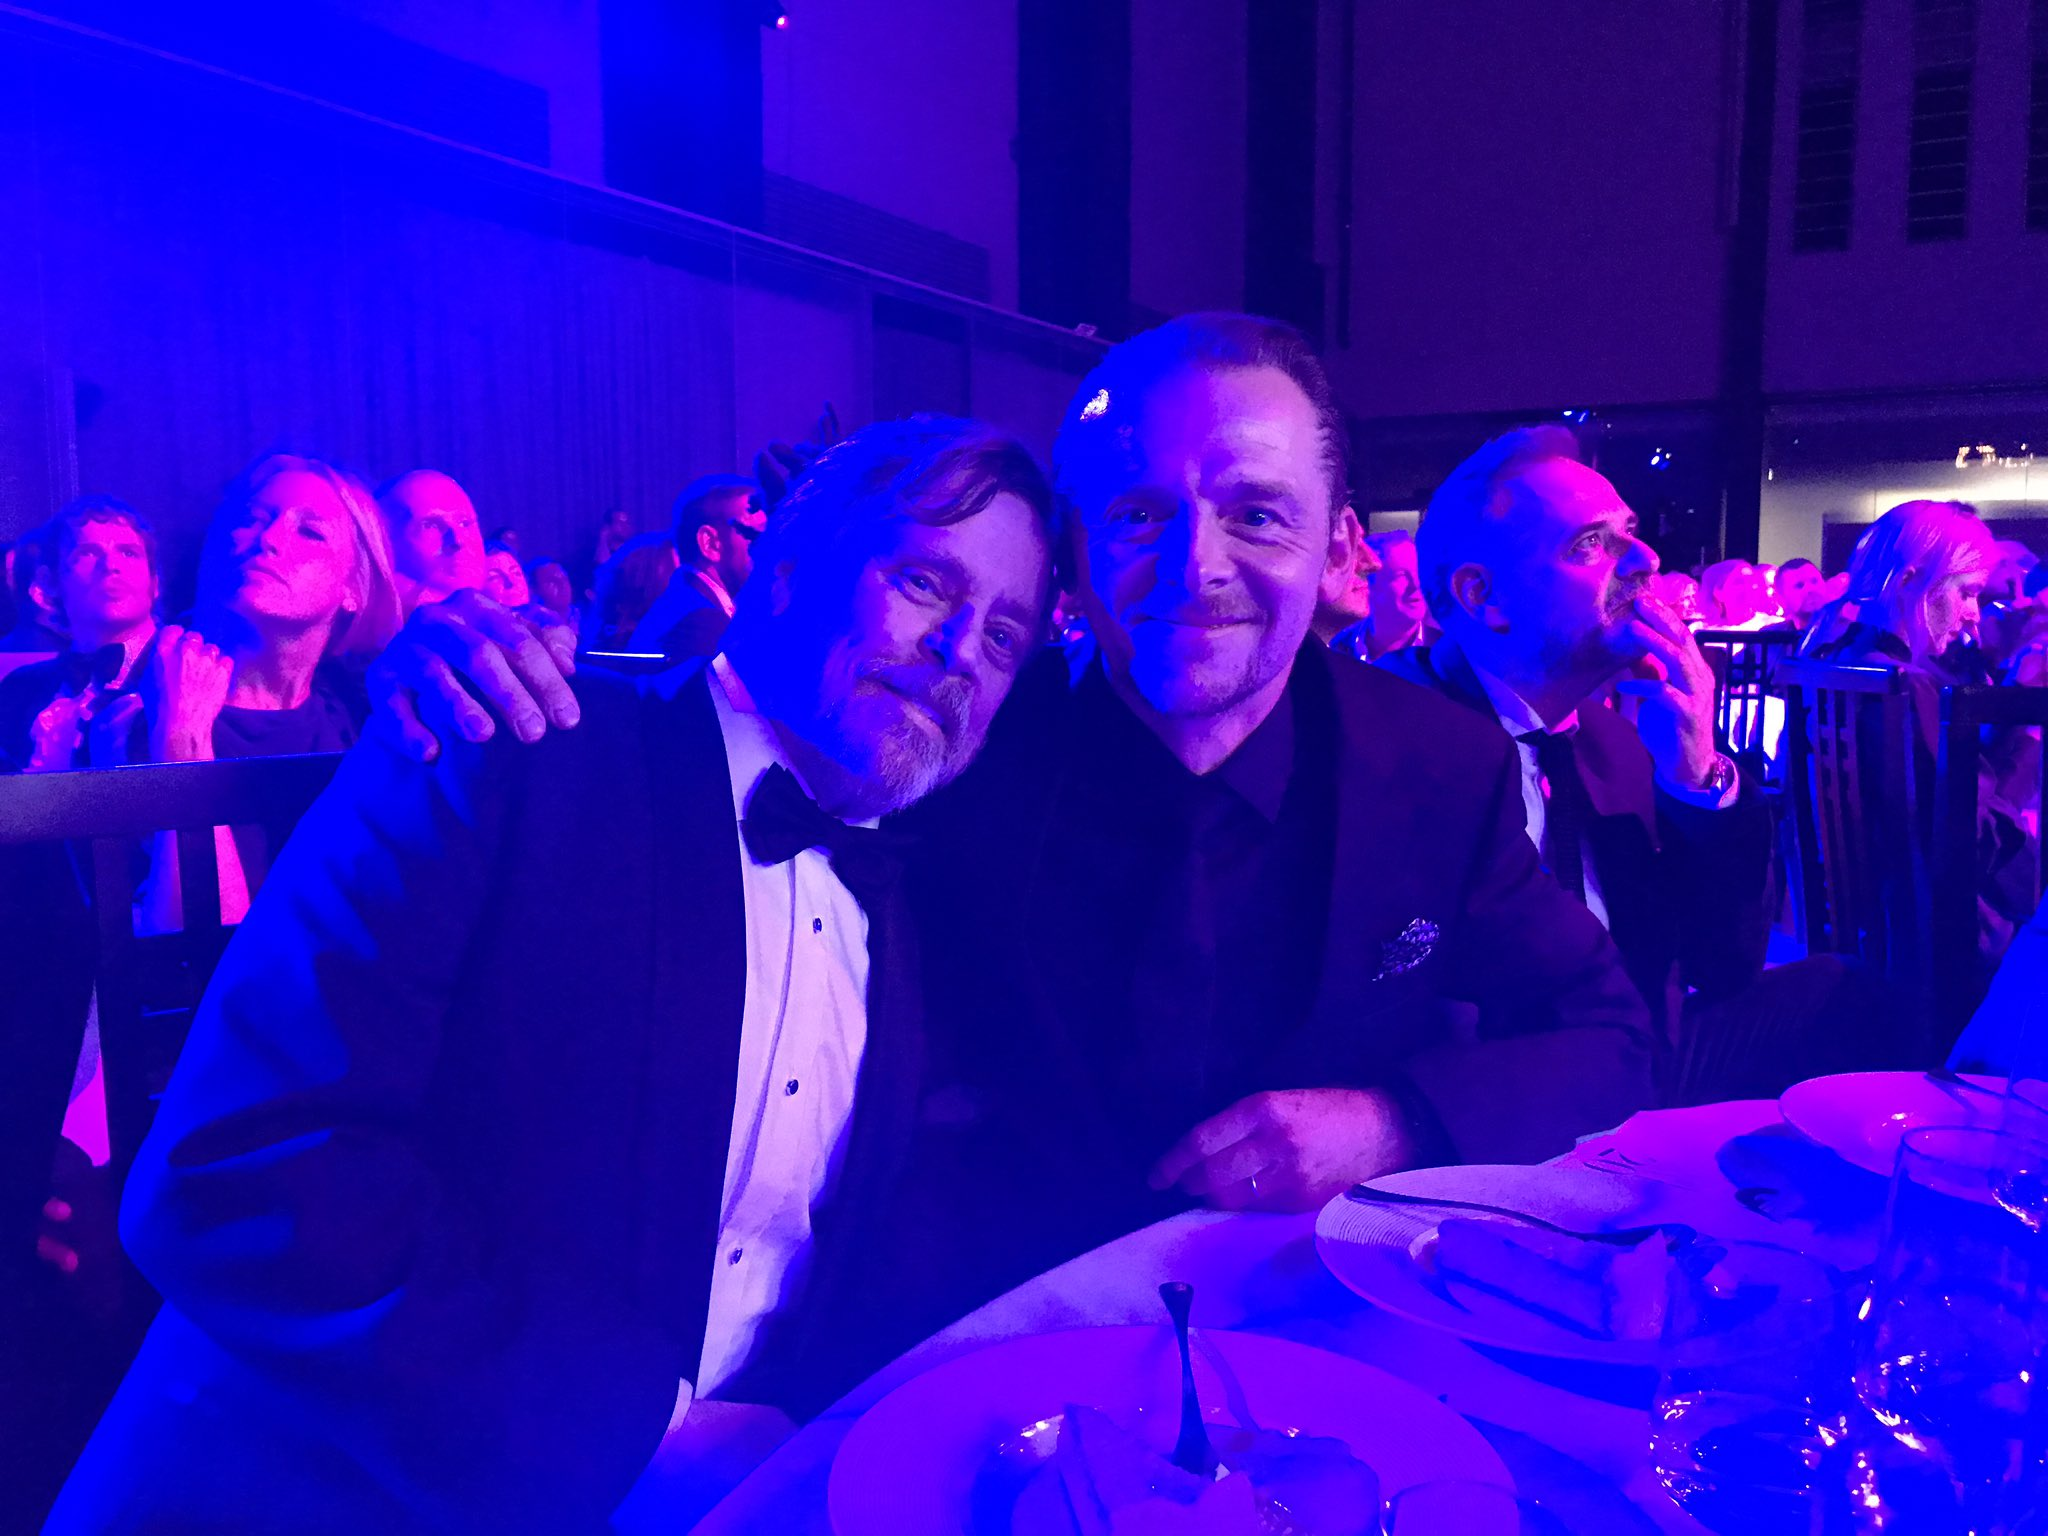 Congratulations to @HamillHimself on his GQ Icon Award. Presented to him by a lifelong fan. #GQAwards https://t.co/bYMQ8CYtRN